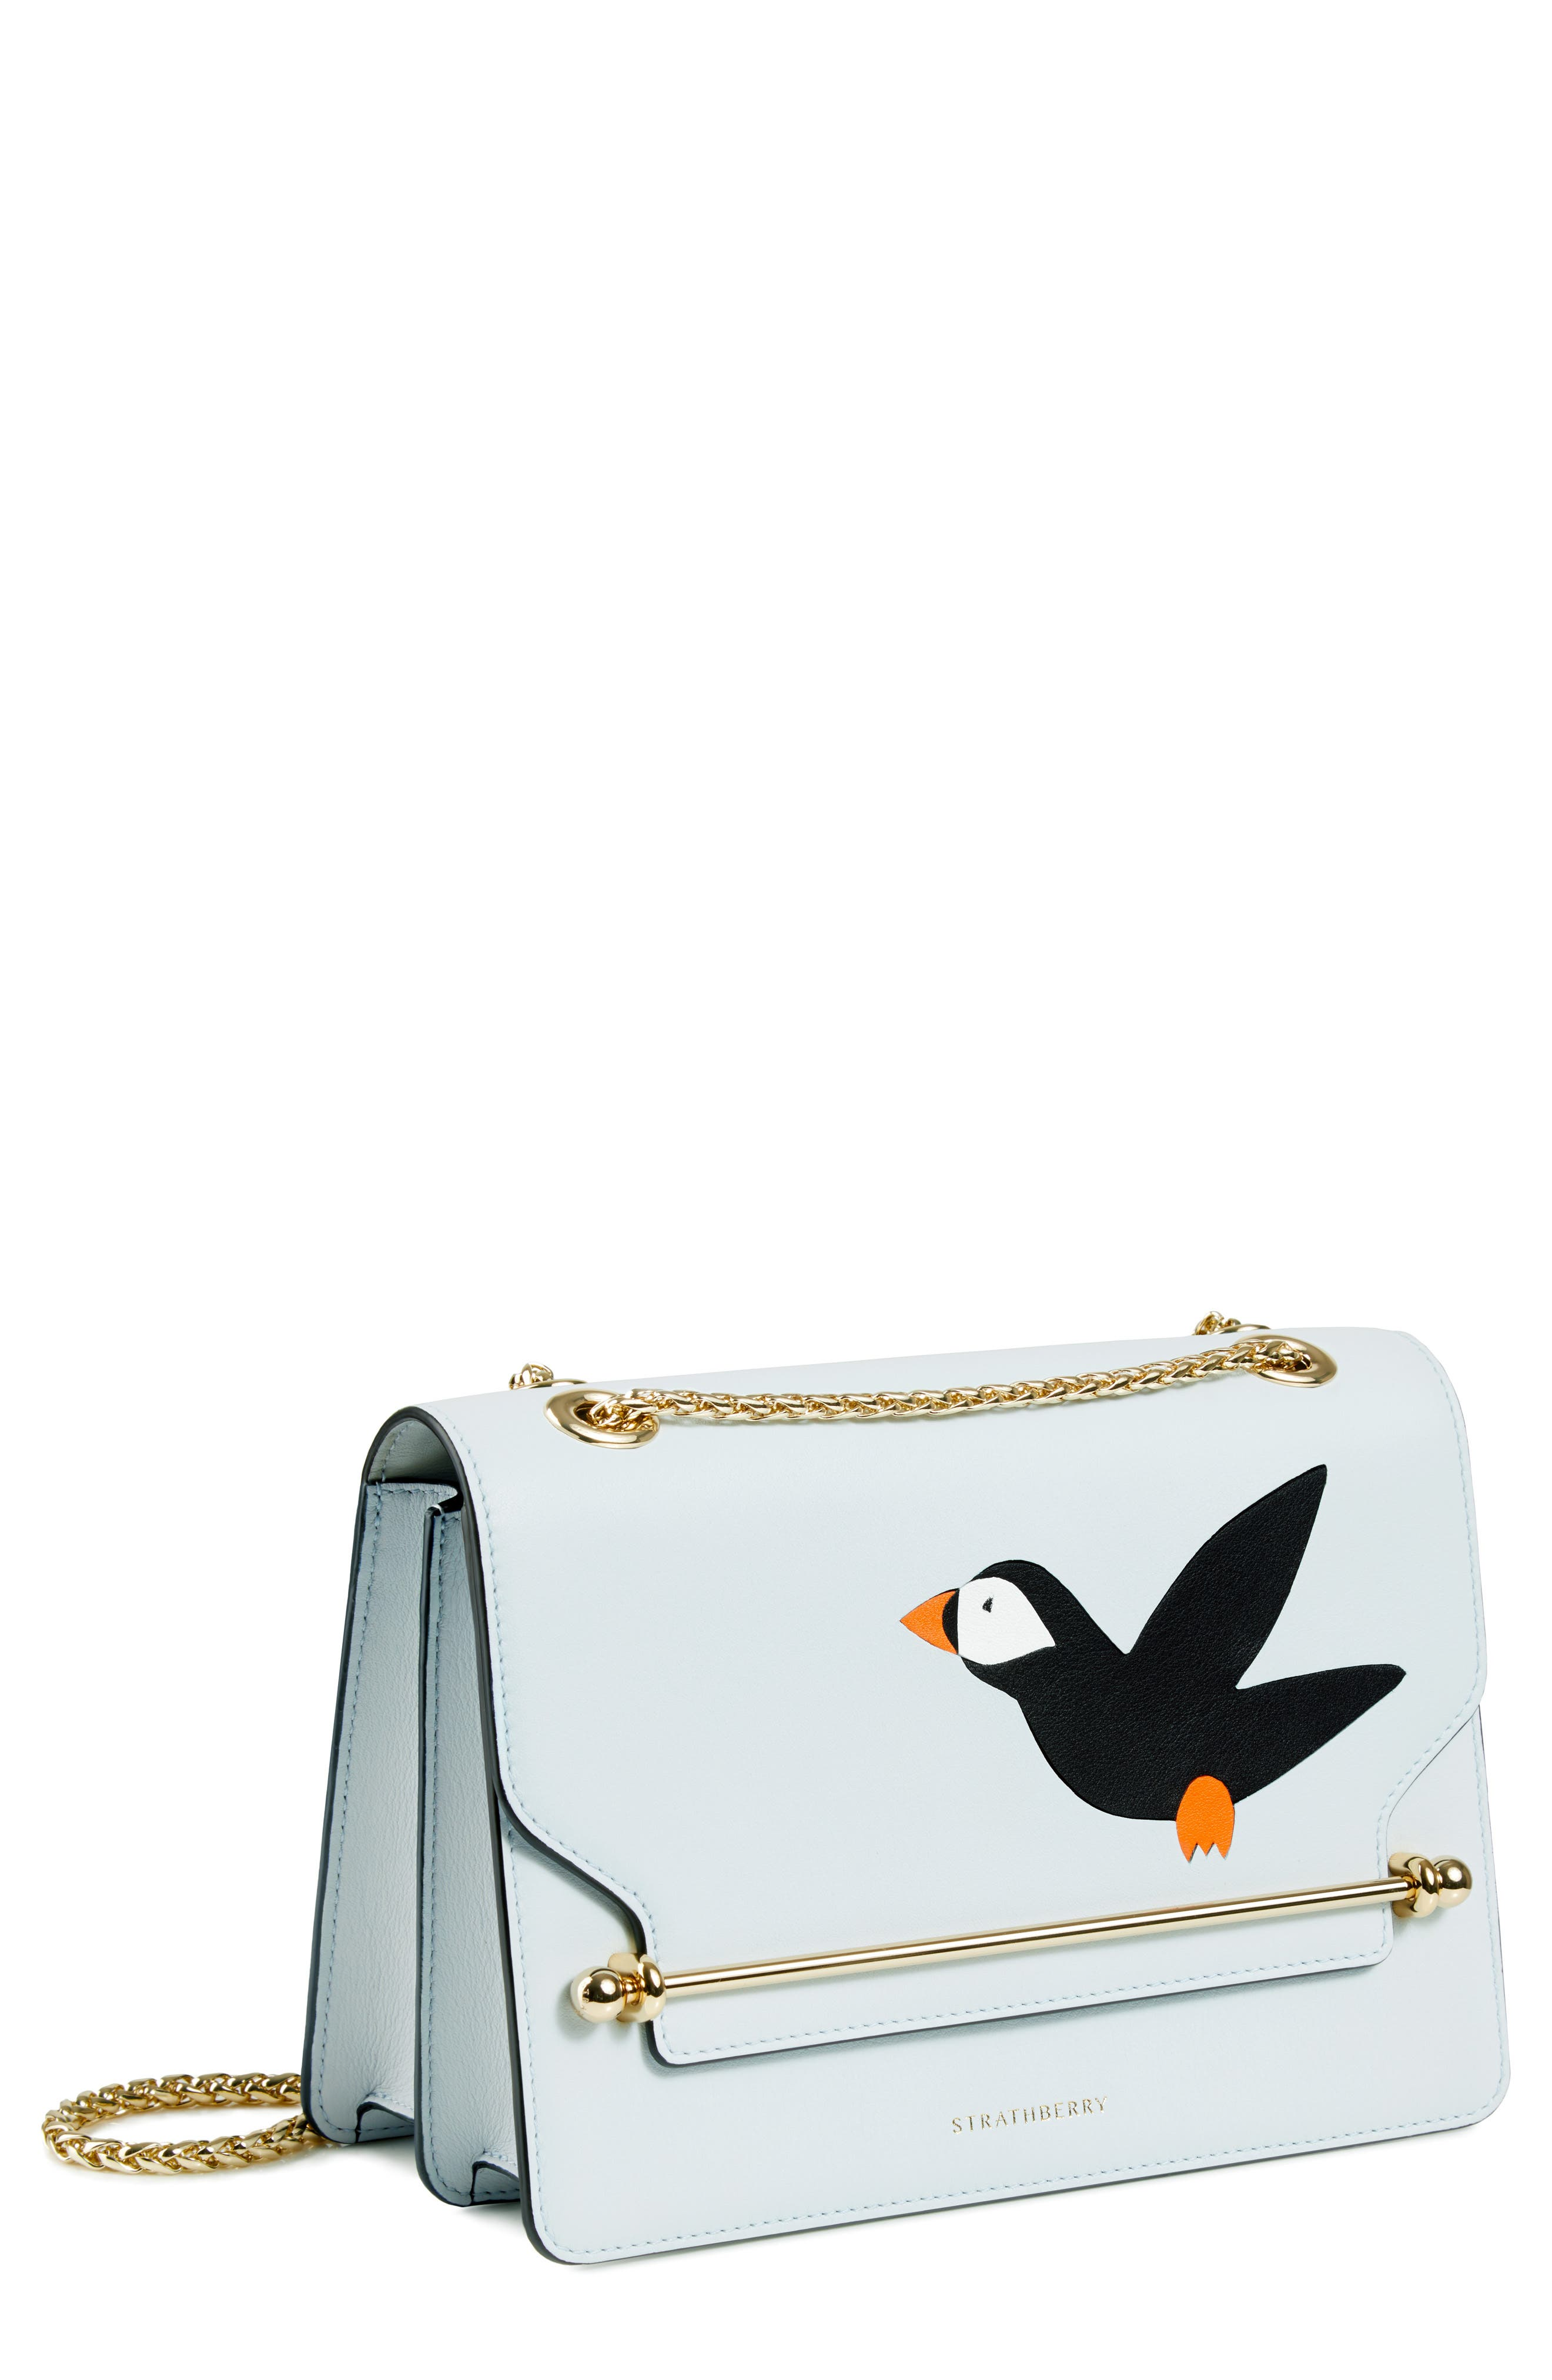 East/West Stylist Wild Puffin Leather Crossbody Bag,                             Main thumbnail 1, color,                             ILLUSION BLUE